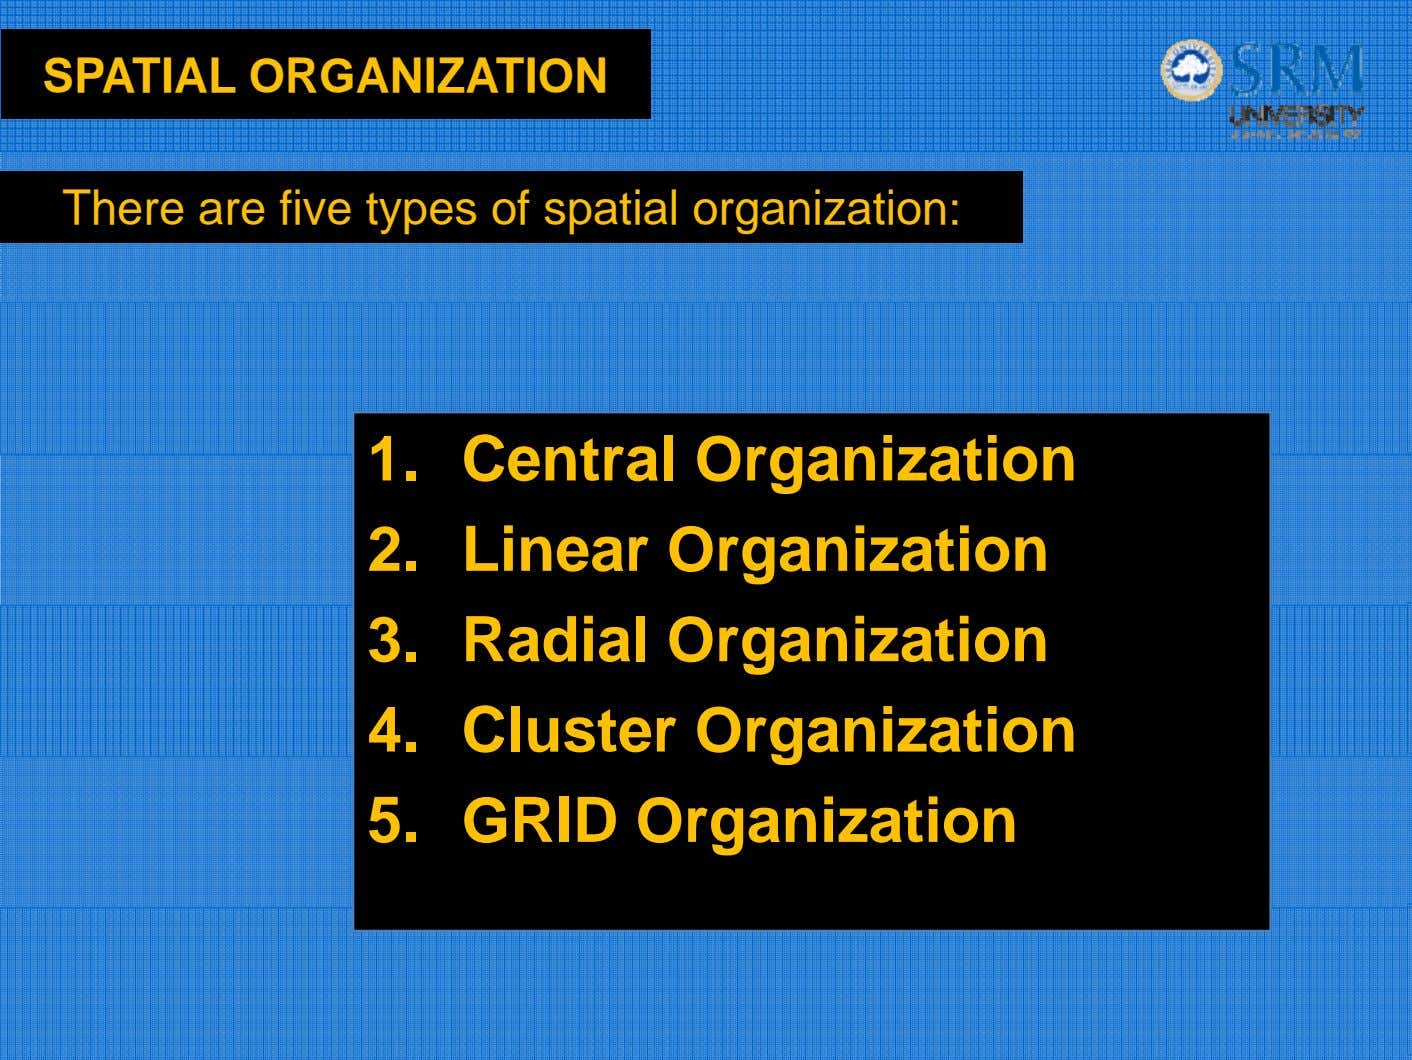 SPATIAL ORGANIZATION There are five types of spatial organization: 1. Central Organization 2. Linear Organization